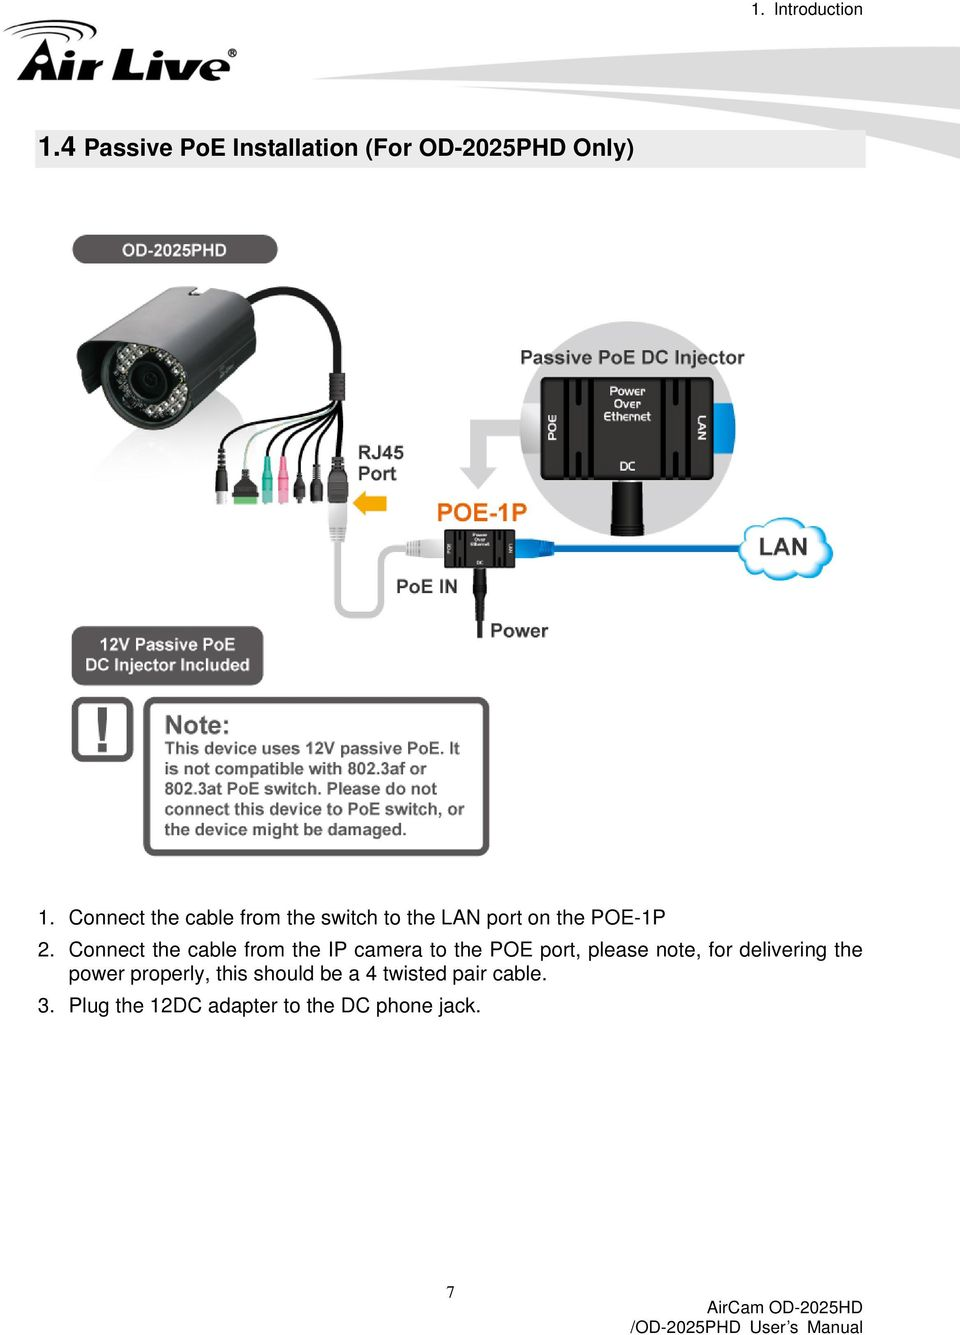 Connect the cable from the IP camera to the POE port, please note, for delivering